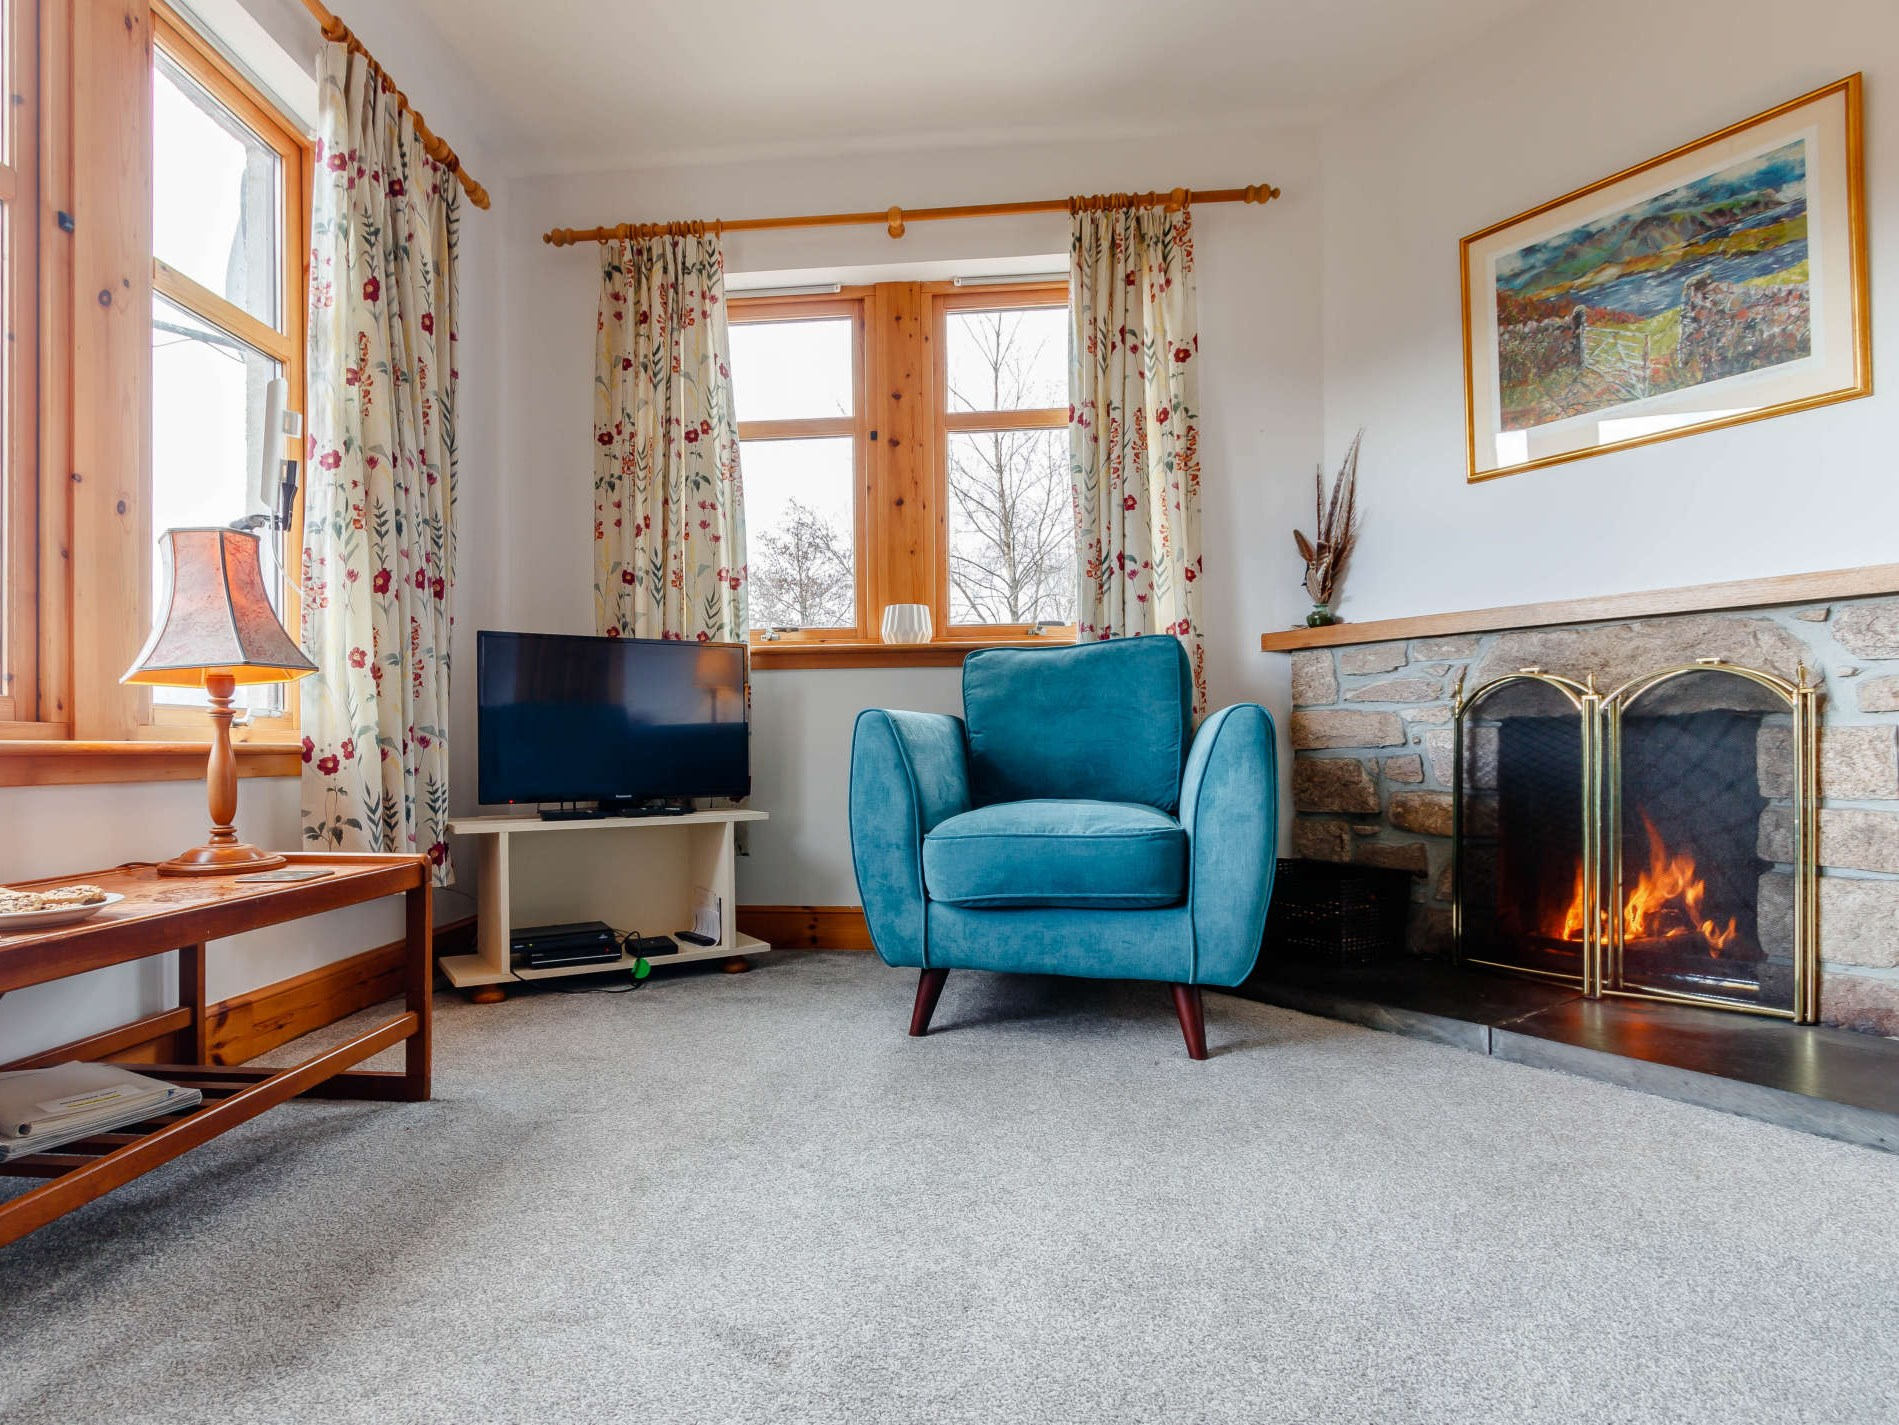 3 Bedroom Bungalow in The Highlands, Moray, Aberdeenshire & The Coastal Trail